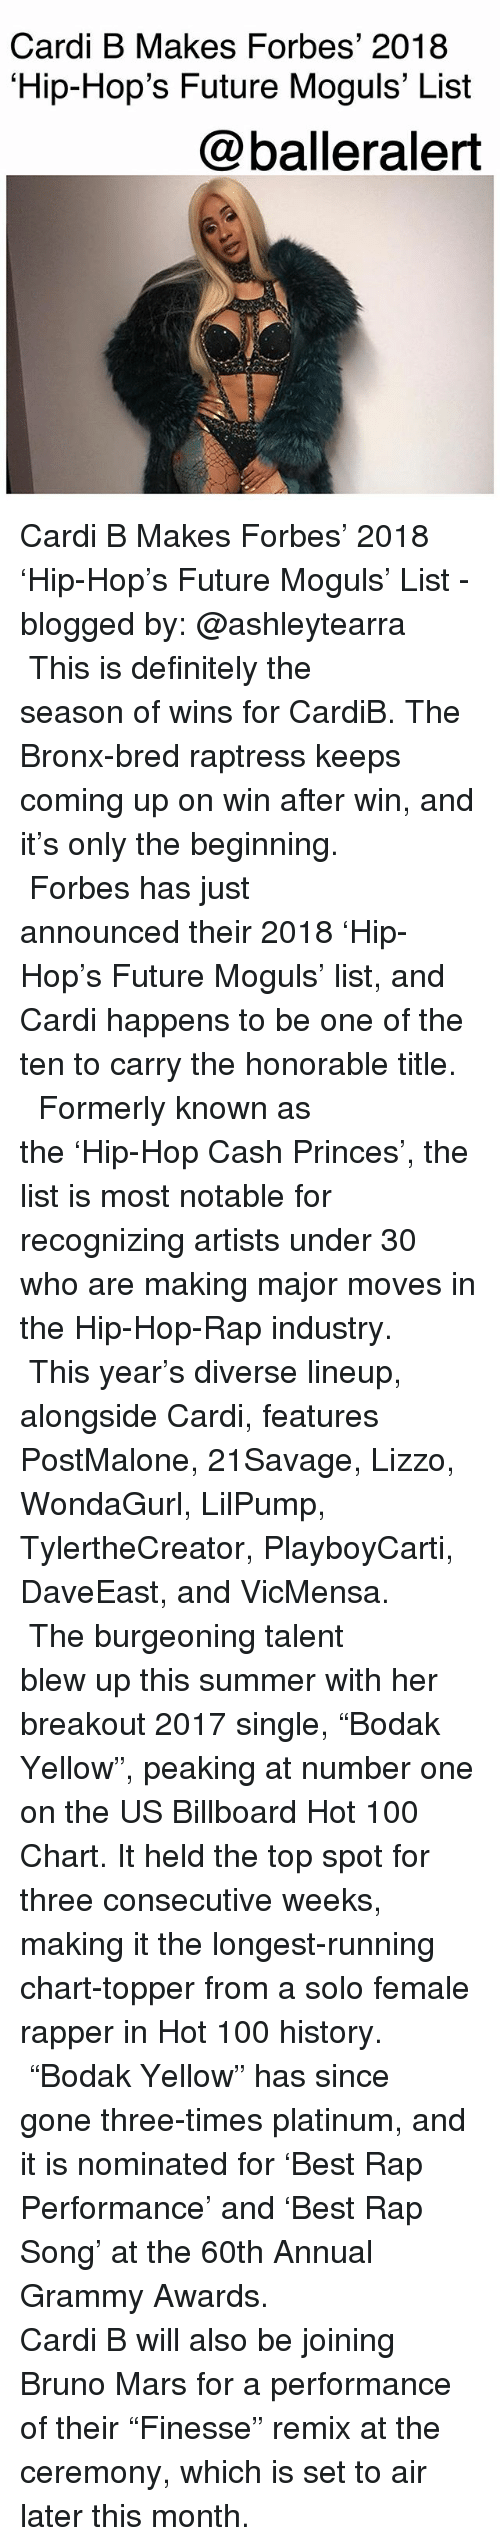 """breakout: Cardi B Makes Forbes' 2018  Hip-Hop's Future Moguls' List  @balleralert Cardi B Makes Forbes' 2018 'Hip-Hop's Future Moguls' List - blogged by: @ashleytearra ⠀⠀⠀⠀⠀⠀⠀ ⠀⠀⠀⠀⠀⠀⠀ This is definitely the season of wins for CardiB. The Bronx-bred raptress keeps coming up on win after win, and it's only the beginning. ⠀⠀⠀⠀⠀⠀⠀ ⠀⠀⠀⠀⠀⠀⠀ Forbes has just announced their 2018 'Hip-Hop's Future Moguls' list, and Cardi happens to be one of the ten to carry the honorable title. ⠀⠀⠀⠀⠀⠀⠀ ⠀⠀⠀⠀⠀⠀⠀ Formerly known as the 'Hip-Hop Cash Princes', the list is most notable for recognizing artists under 30 who are making major moves in the Hip-Hop-Rap industry. ⠀⠀⠀⠀⠀⠀⠀ ⠀⠀⠀⠀⠀⠀⠀ This year's diverse lineup, alongside Cardi, features PostMalone, 21Savage, Lizzo, WondaGurl, LilPump, TylertheCreator, PlayboyCarti, DaveEast, and VicMensa. ⠀⠀⠀⠀⠀⠀⠀ ⠀⠀⠀⠀⠀⠀⠀ The burgeoning talent blew up this summer with her breakout 2017 single, """"Bodak Yellow"""", peaking at number one on the US Billboard Hot 100 Chart. It held the top spot for three consecutive weeks, making it the longest-running chart-topper from a solo female rapper in Hot 100 history. ⠀⠀⠀⠀⠀⠀⠀ ⠀⠀⠀⠀⠀⠀⠀ """"Bodak Yellow"""" has since gone three-times platinum, and it is nominated for 'Best Rap Performance' and 'Best Rap Song' at the 60th Annual Grammy Awards. ⠀⠀⠀⠀⠀⠀⠀ ⠀⠀⠀⠀⠀⠀⠀ Cardi B will also be joining Bruno Mars for a performance of their """"Finesse"""" remix at the ceremony, which is set to air later this month."""